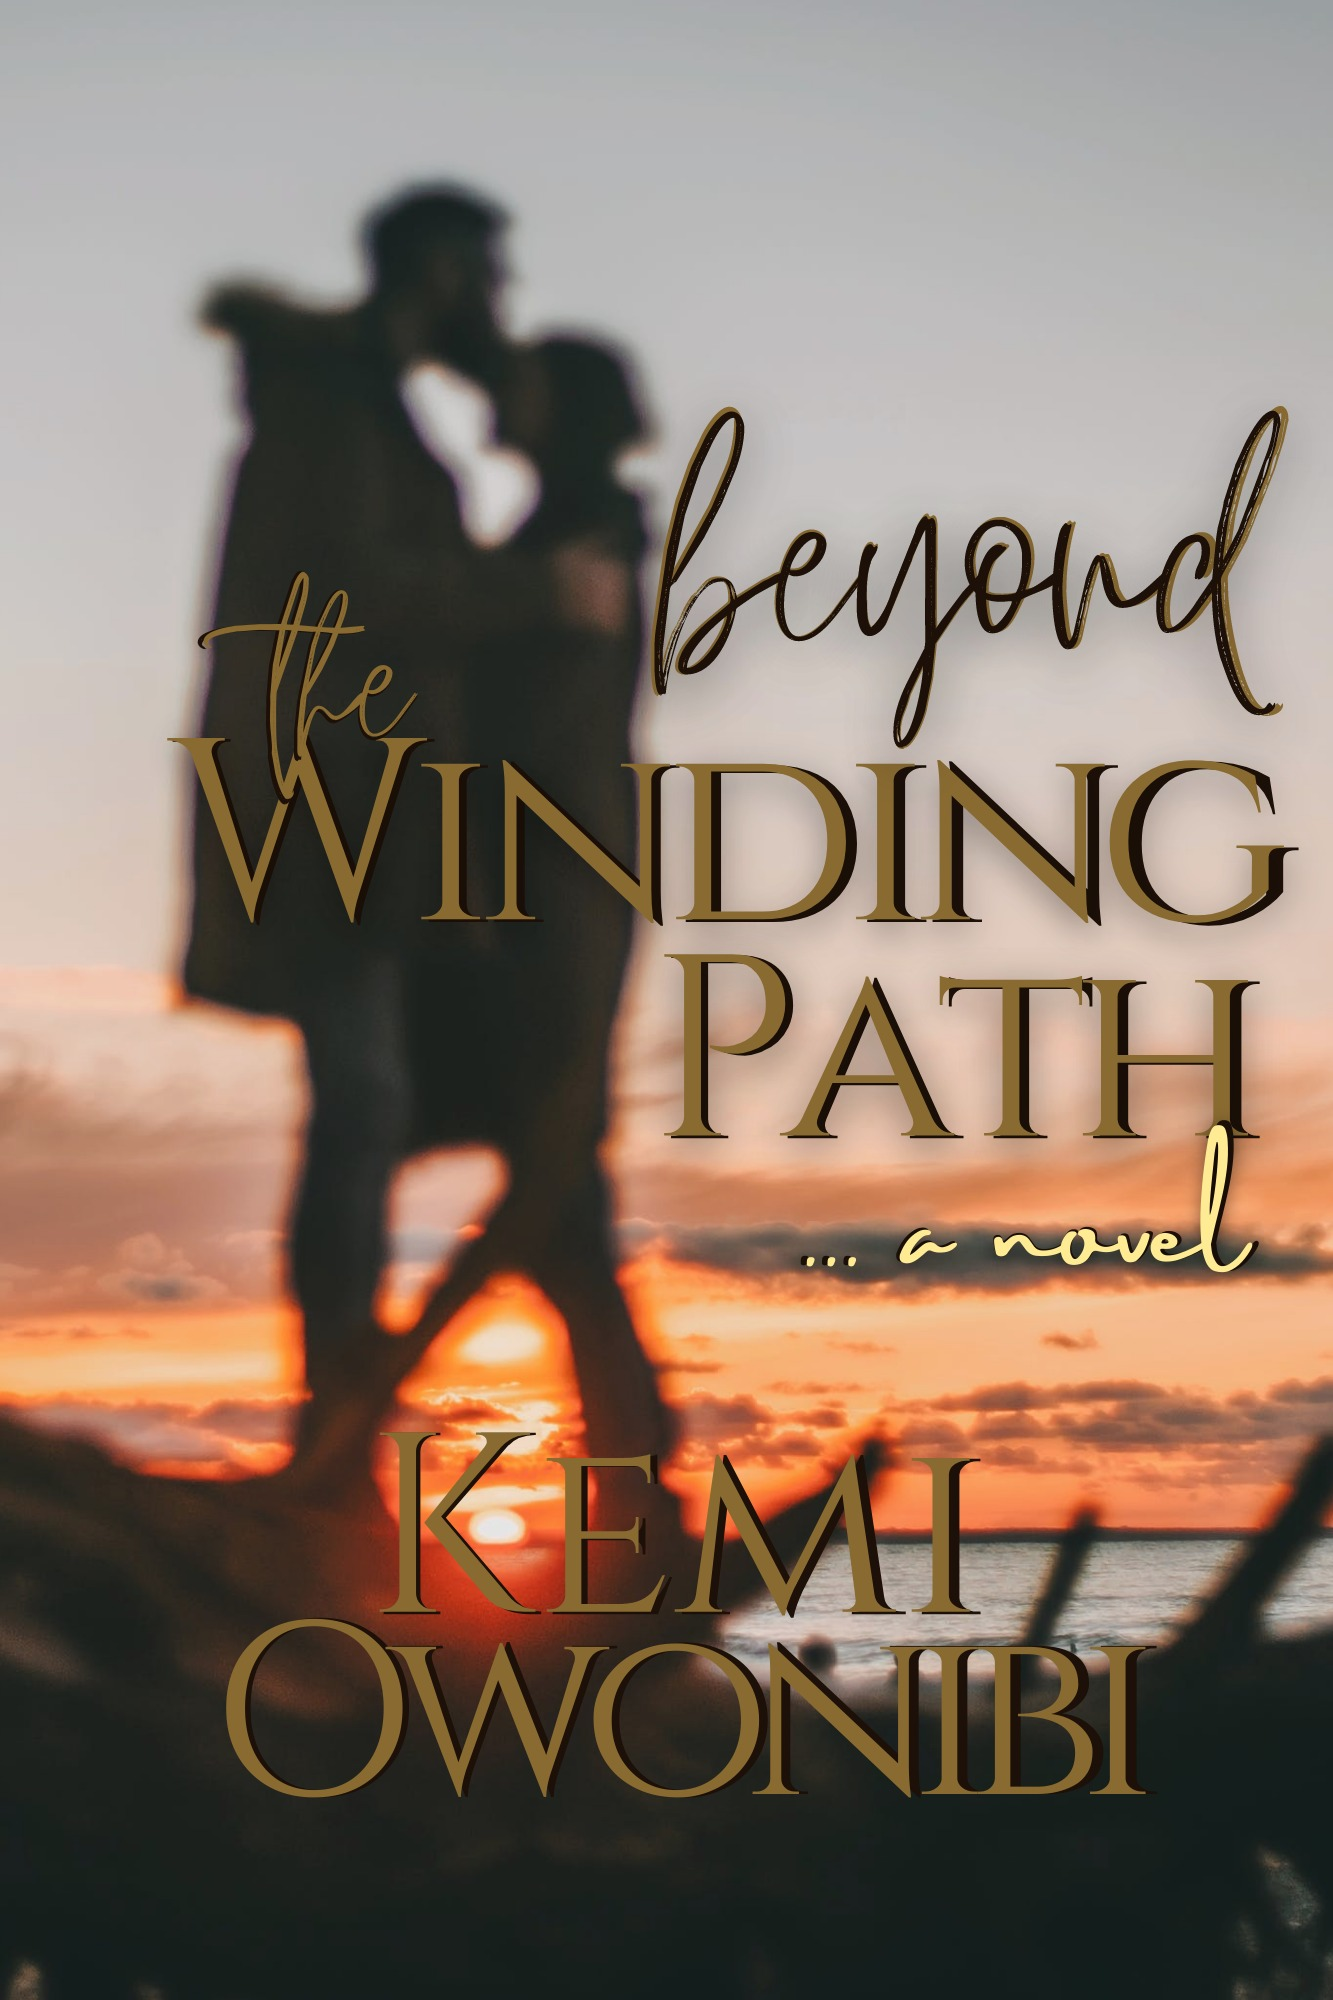 Beyond The Winding Path ~ the novel